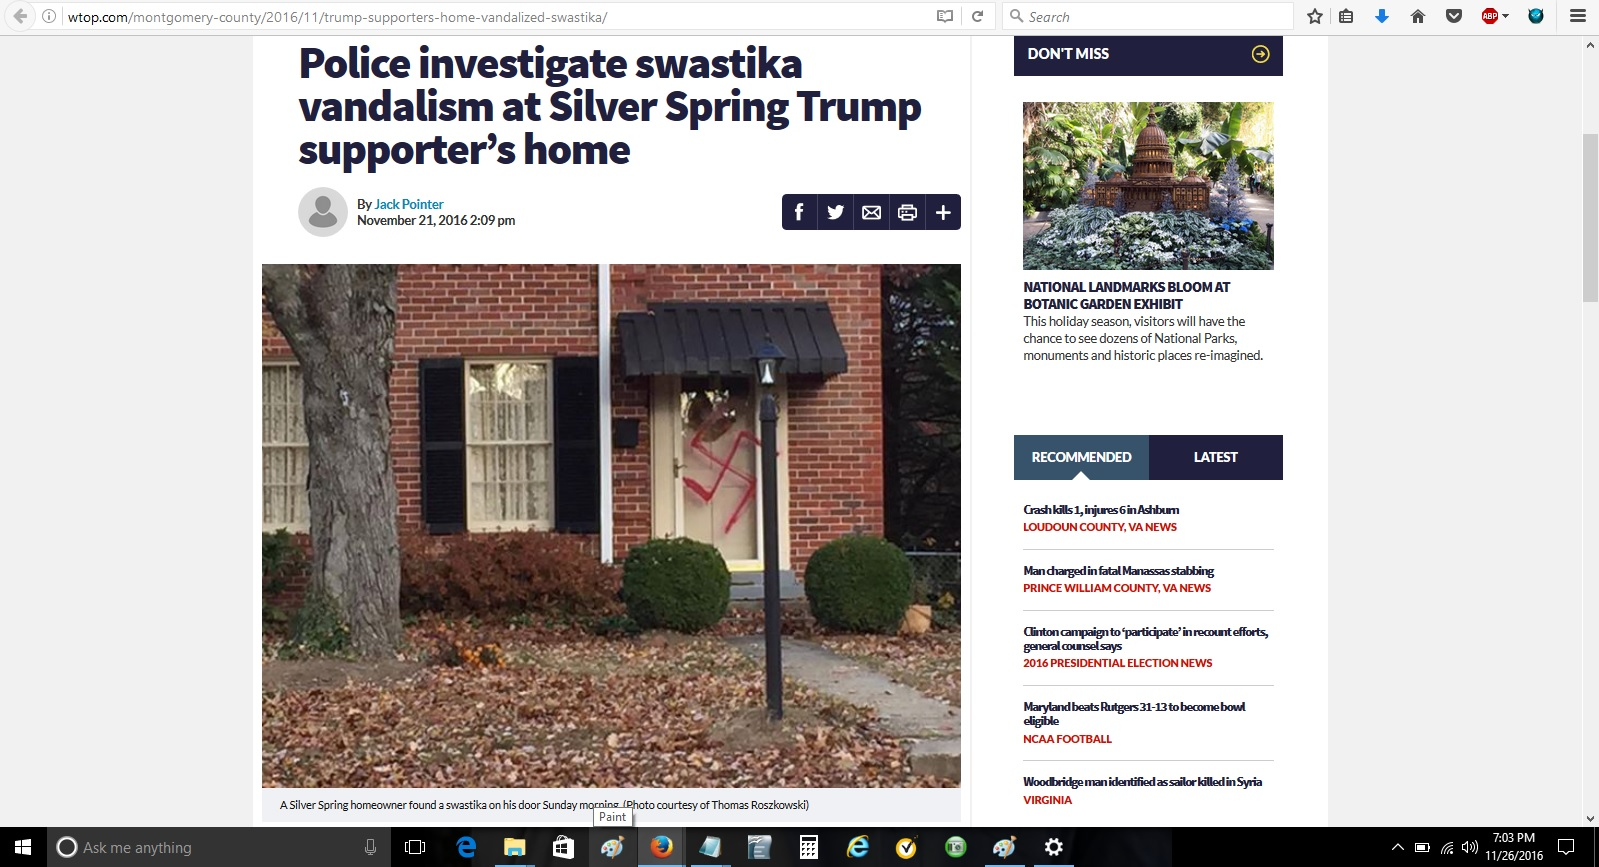 21nov-swastika-on-dc-trump-supp-home